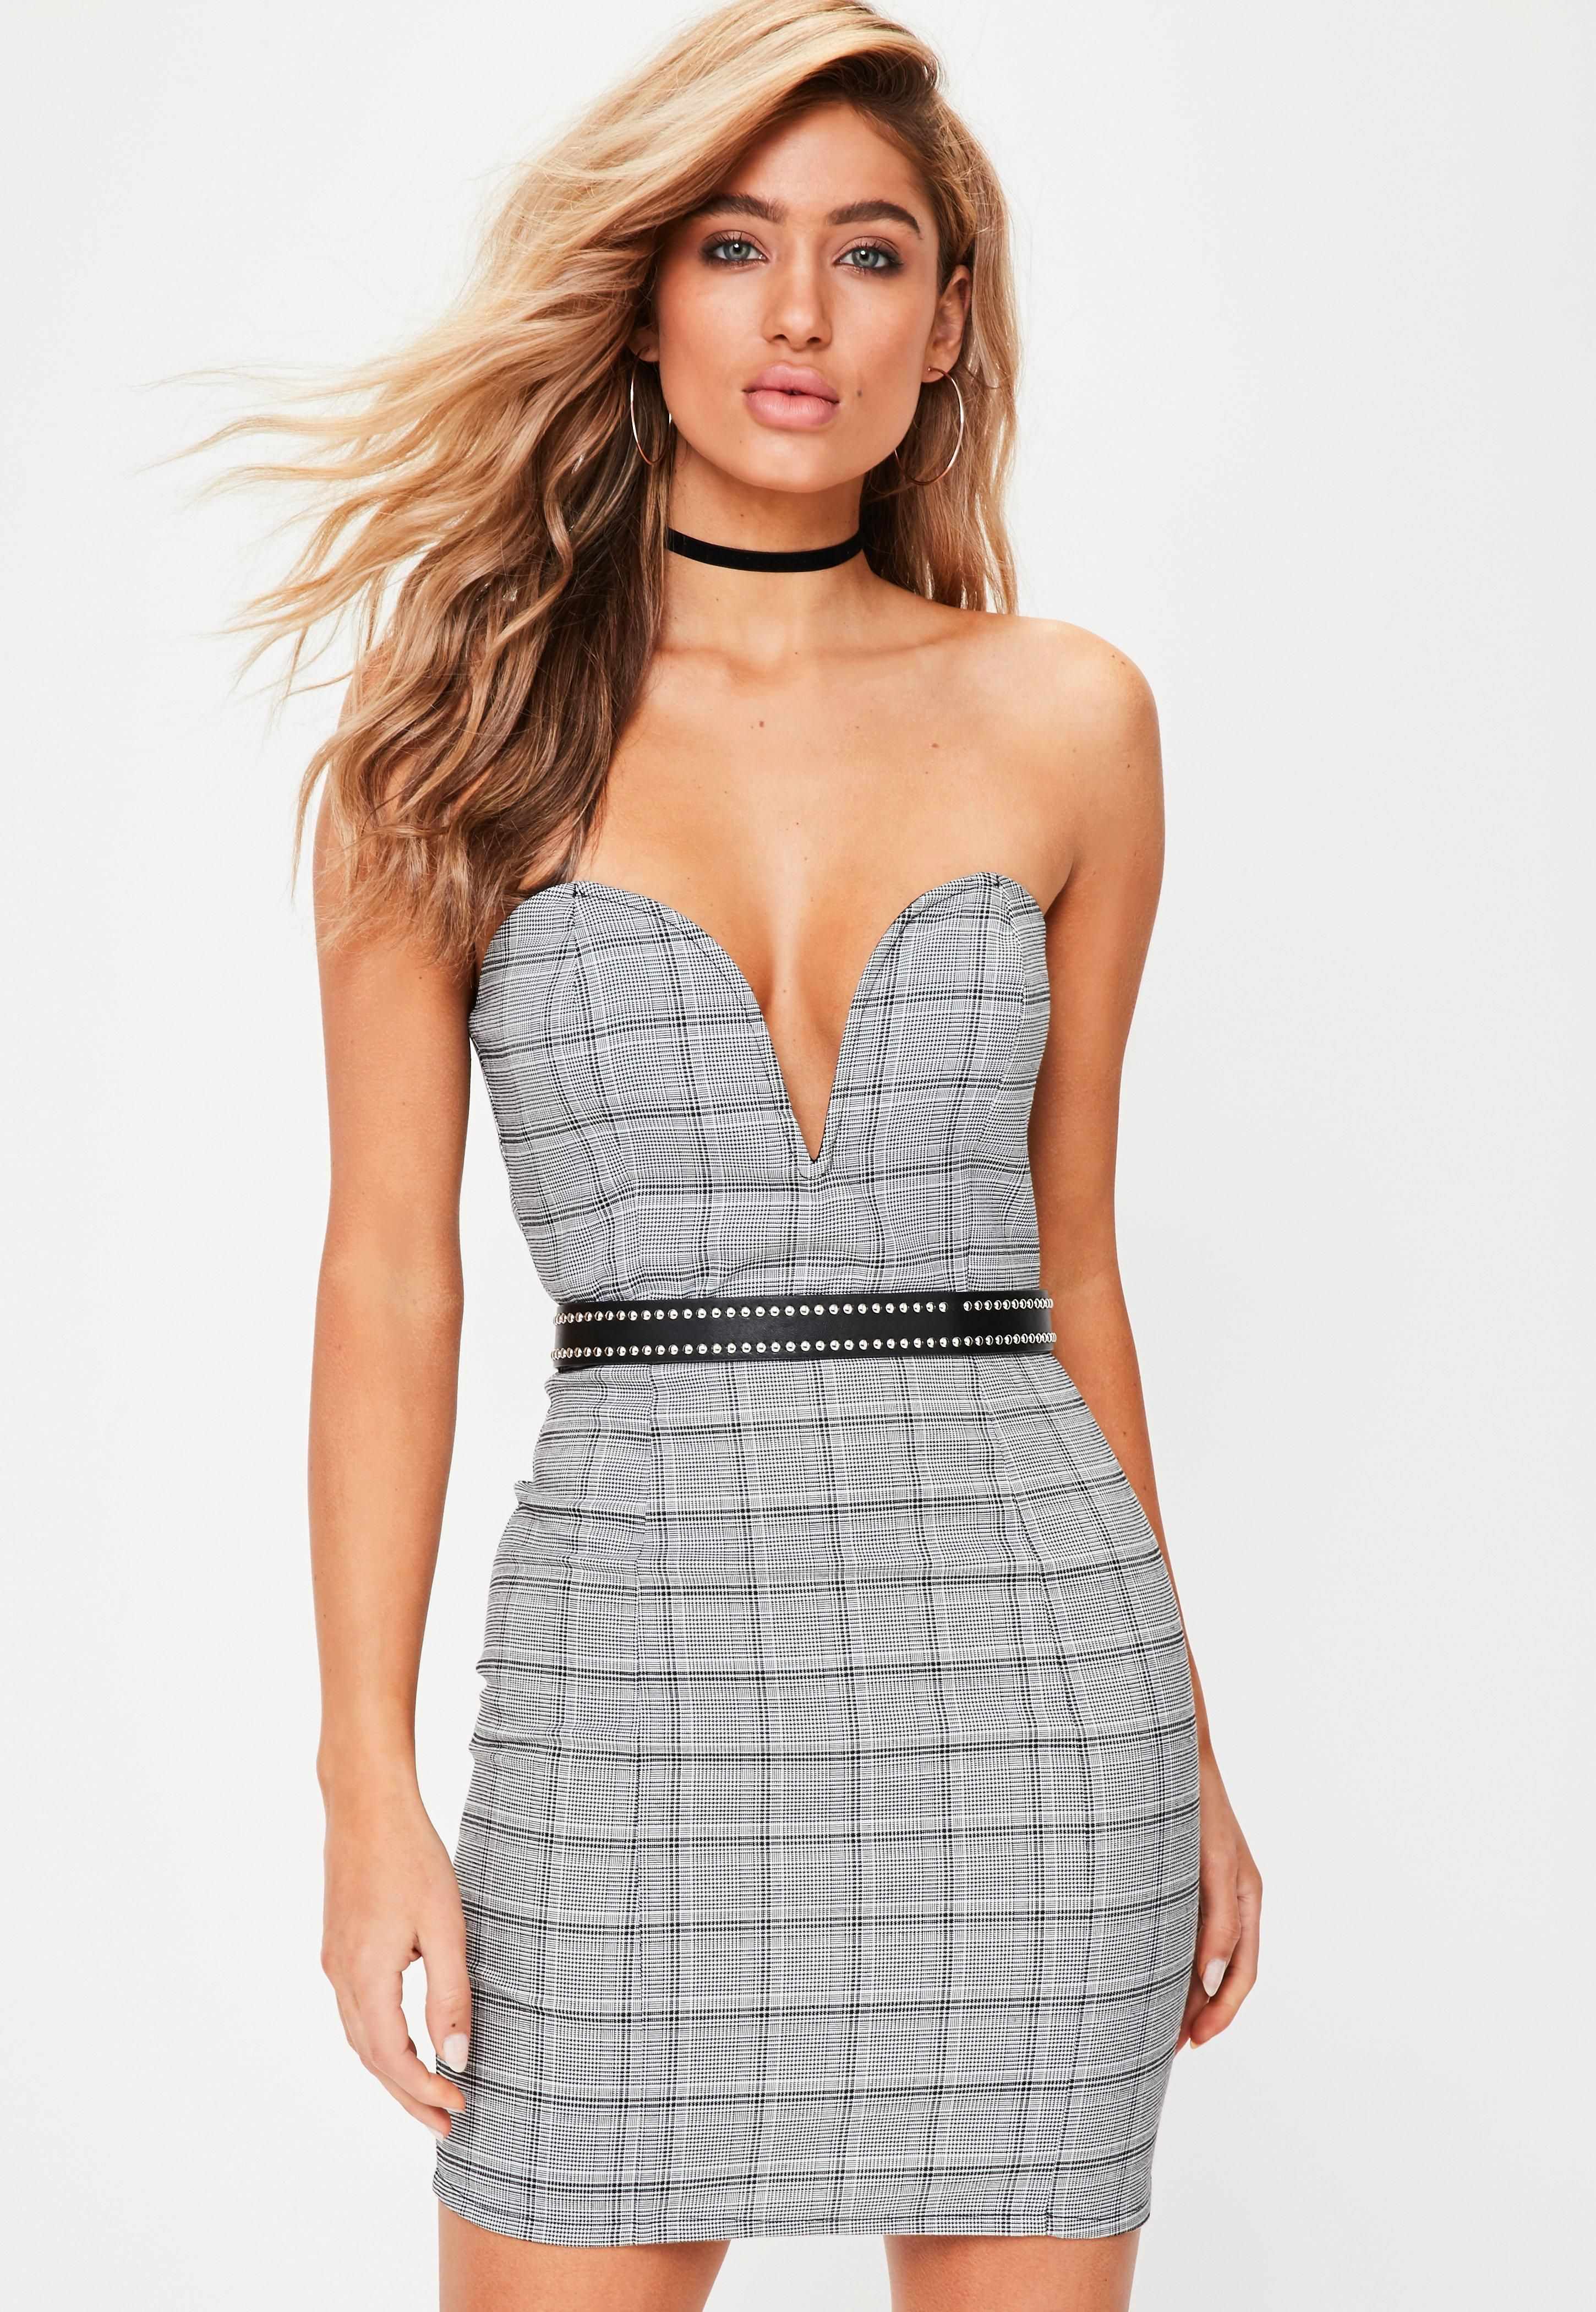 Take the plunge wearing this black and white checked dress. Featuring a mini length, plunge front and bandeau style.